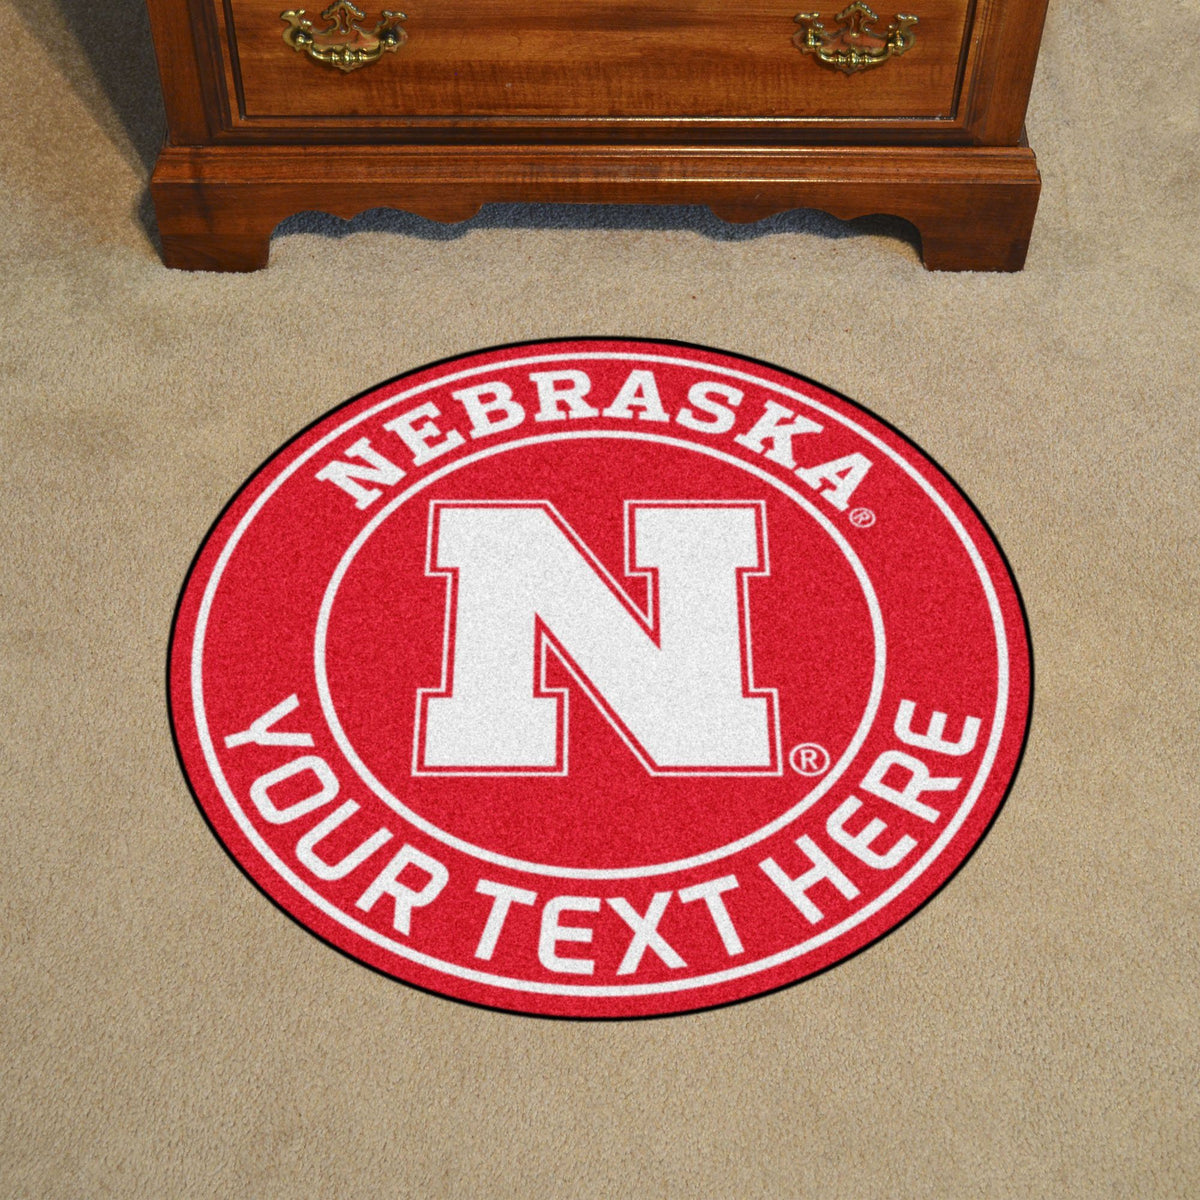 Collegiate Personalized Roundel Mat Personalized Roundel Mat Fan Mats University of Nebraska